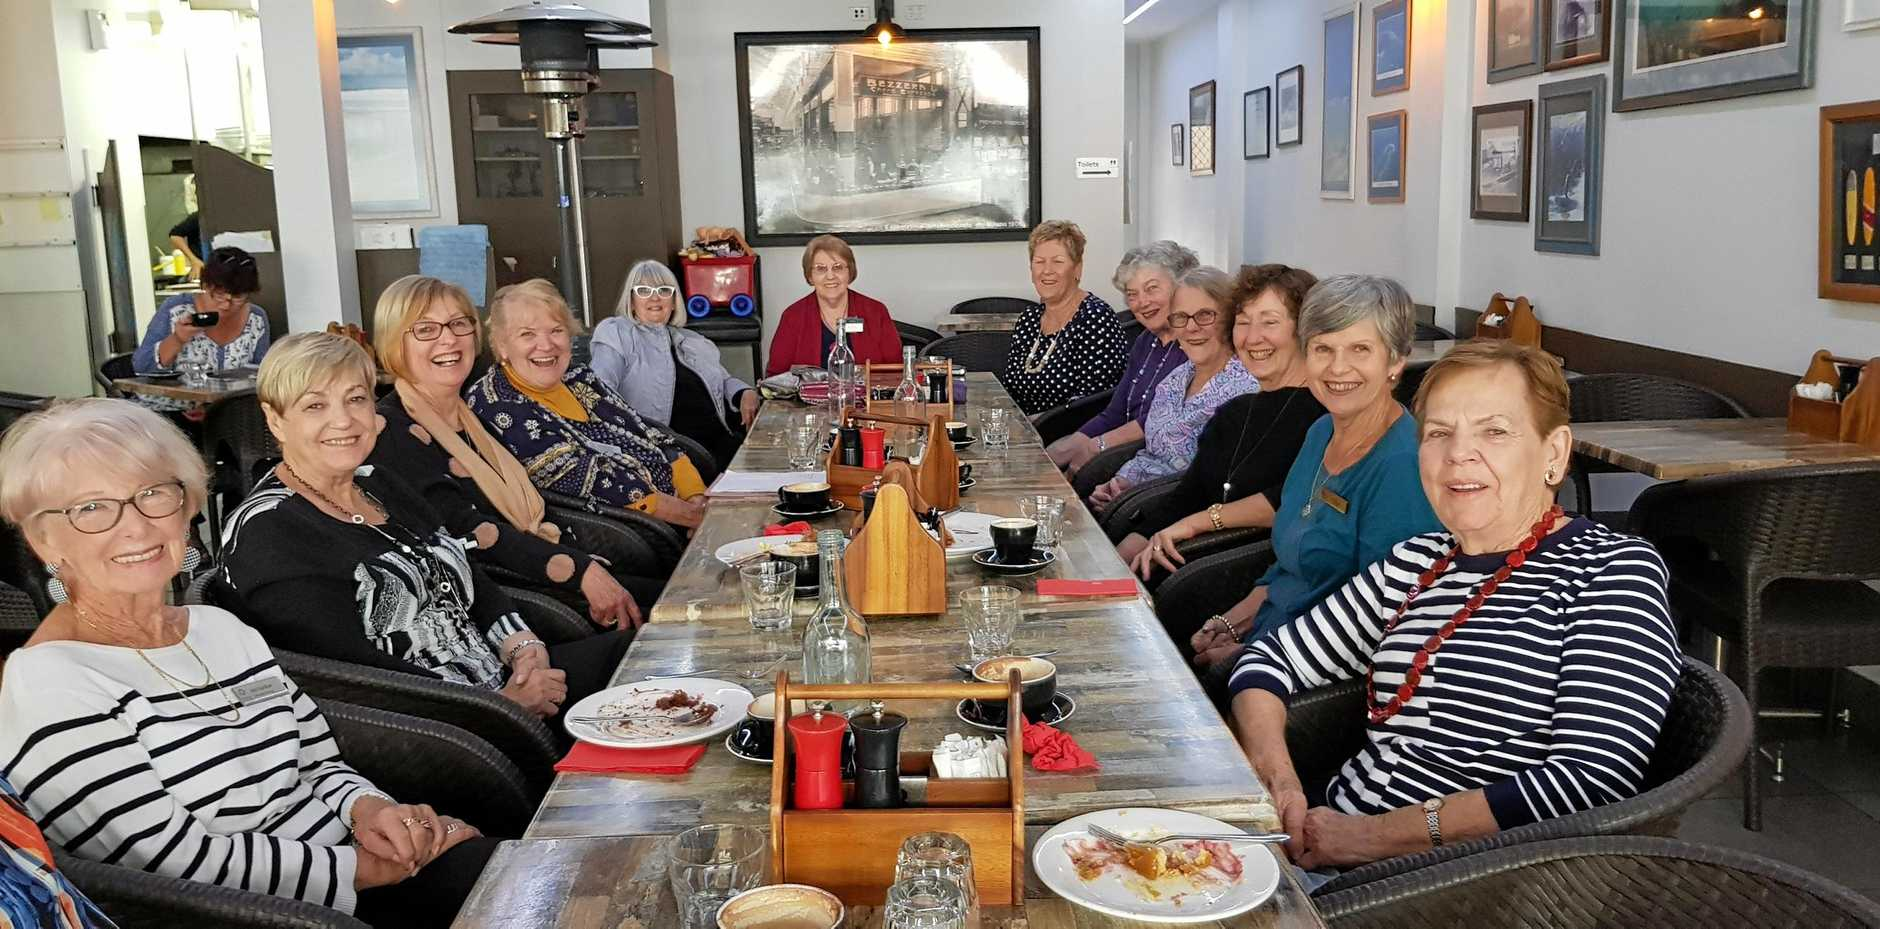 COFFEE AND CHAT: Caloundra Evening VIEW members Judy Gardiner, Margaret Ive-Smith, Val Davis, Julie Williams, Carol Kahl, May Thomas, Beryl Moye, Sue Meehan, Betty Brie, Mary Montgomery, Cheryl Scott, and Pat Porter enjoy Morning Tea at Café By the Beach, Moffat Headland.